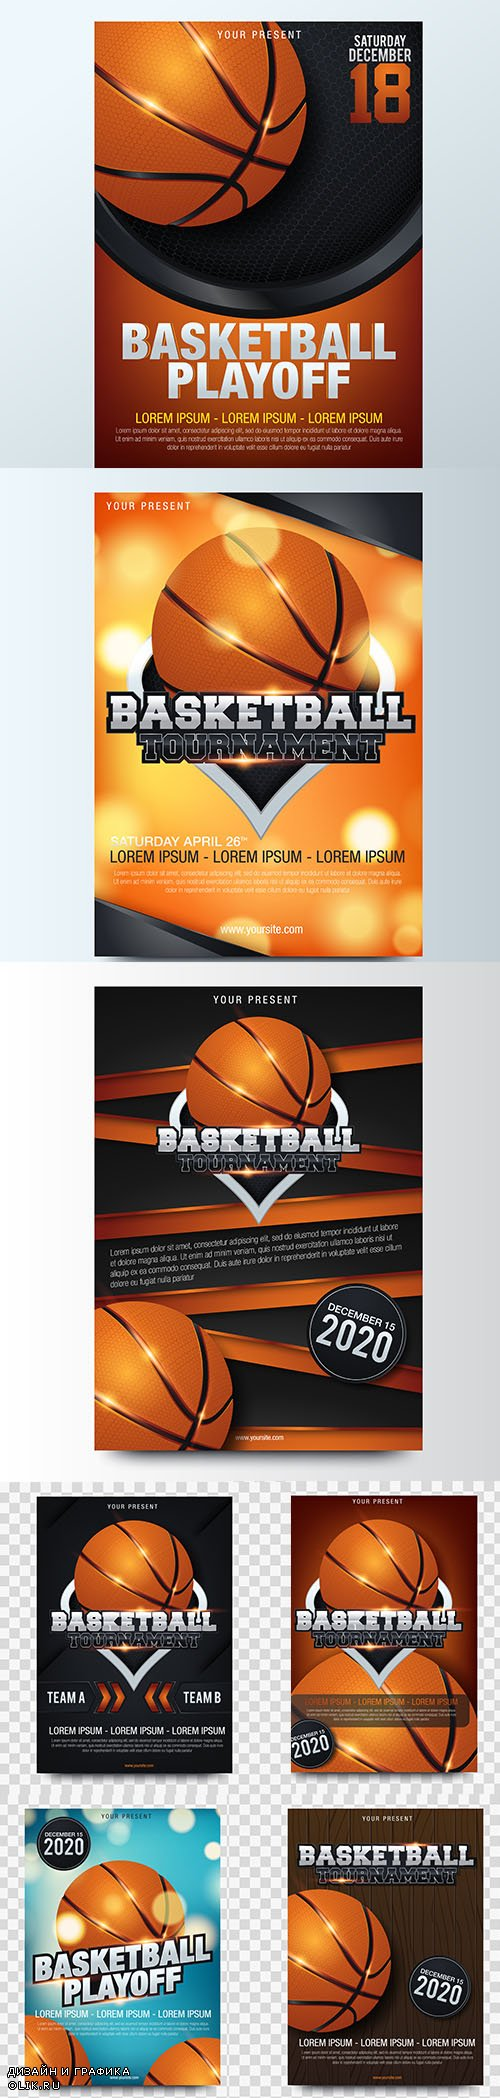 Basketball Poster with Ball Premium Illustrations